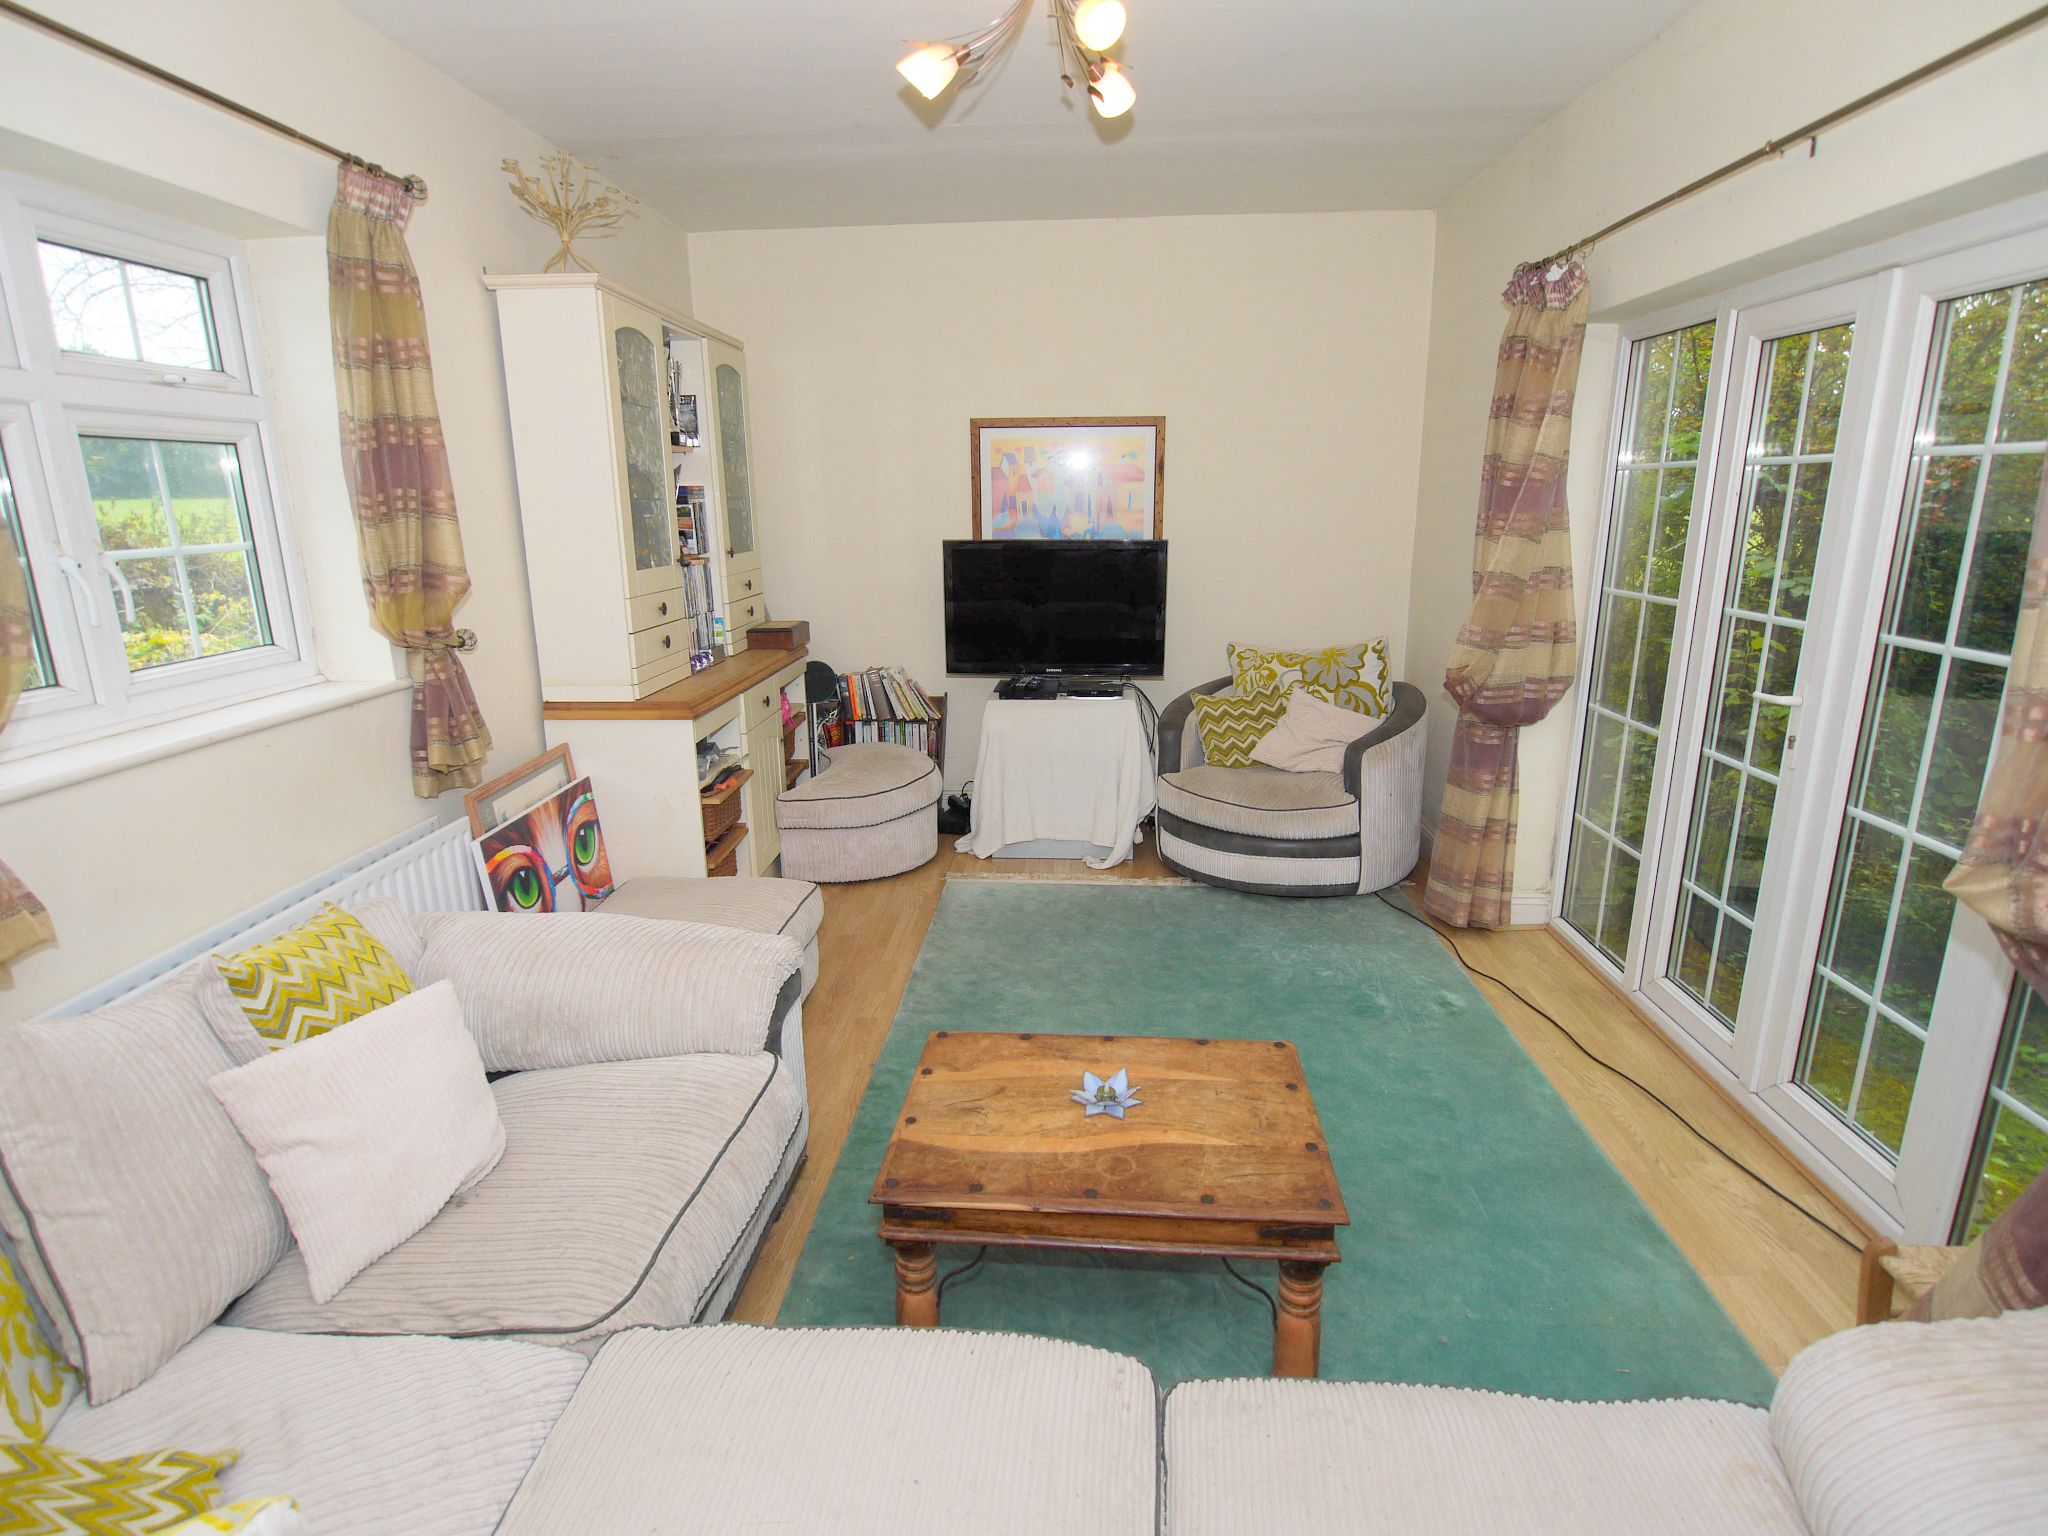 4 bedroom semi-detached house For Sale in Sevenoaks - Photograph 4